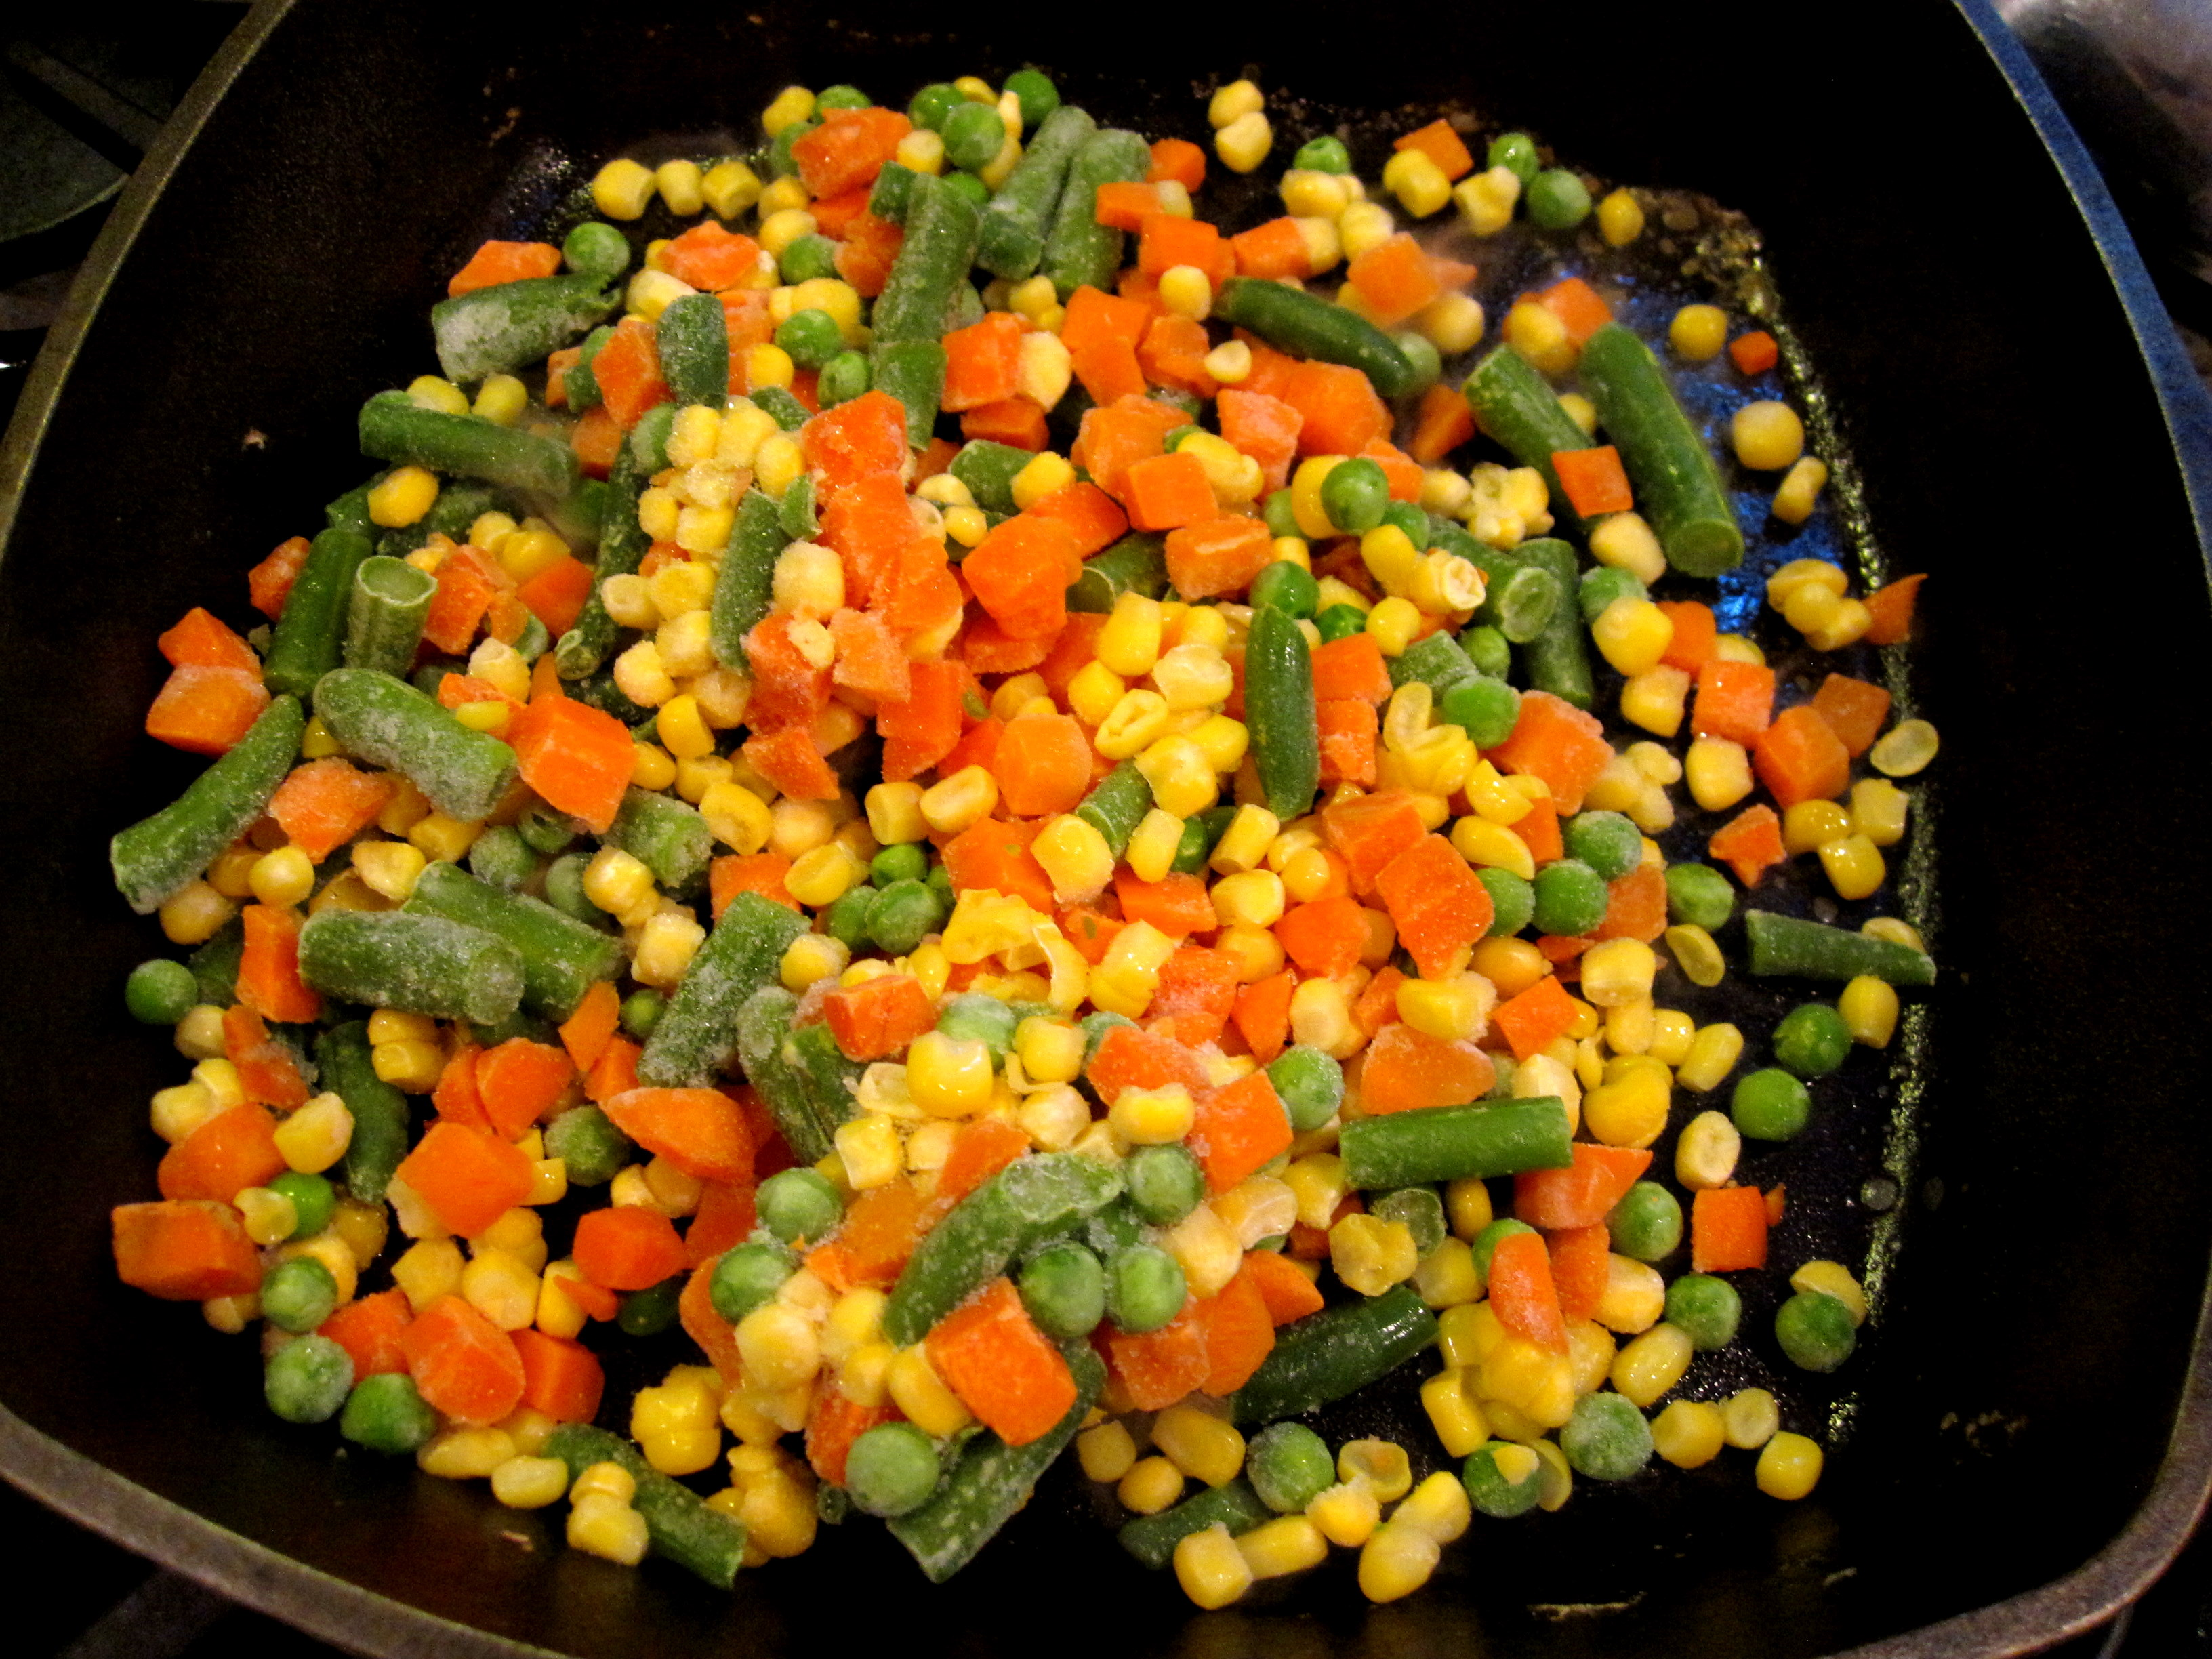 Frozen cleaned vegetables